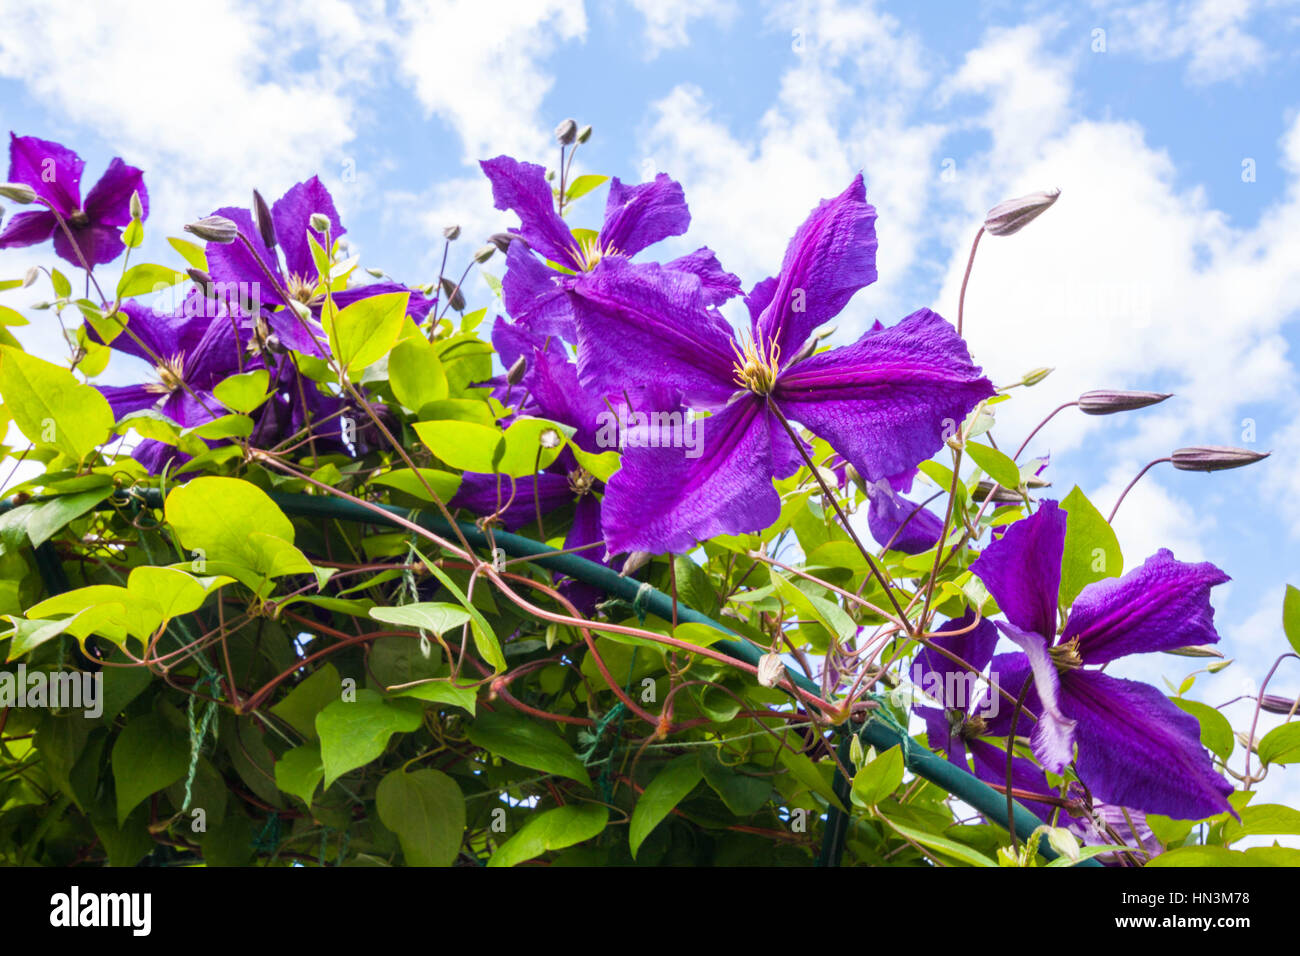 Clinging Vine With Purple Flowers Stock Photos Clinging Vine With